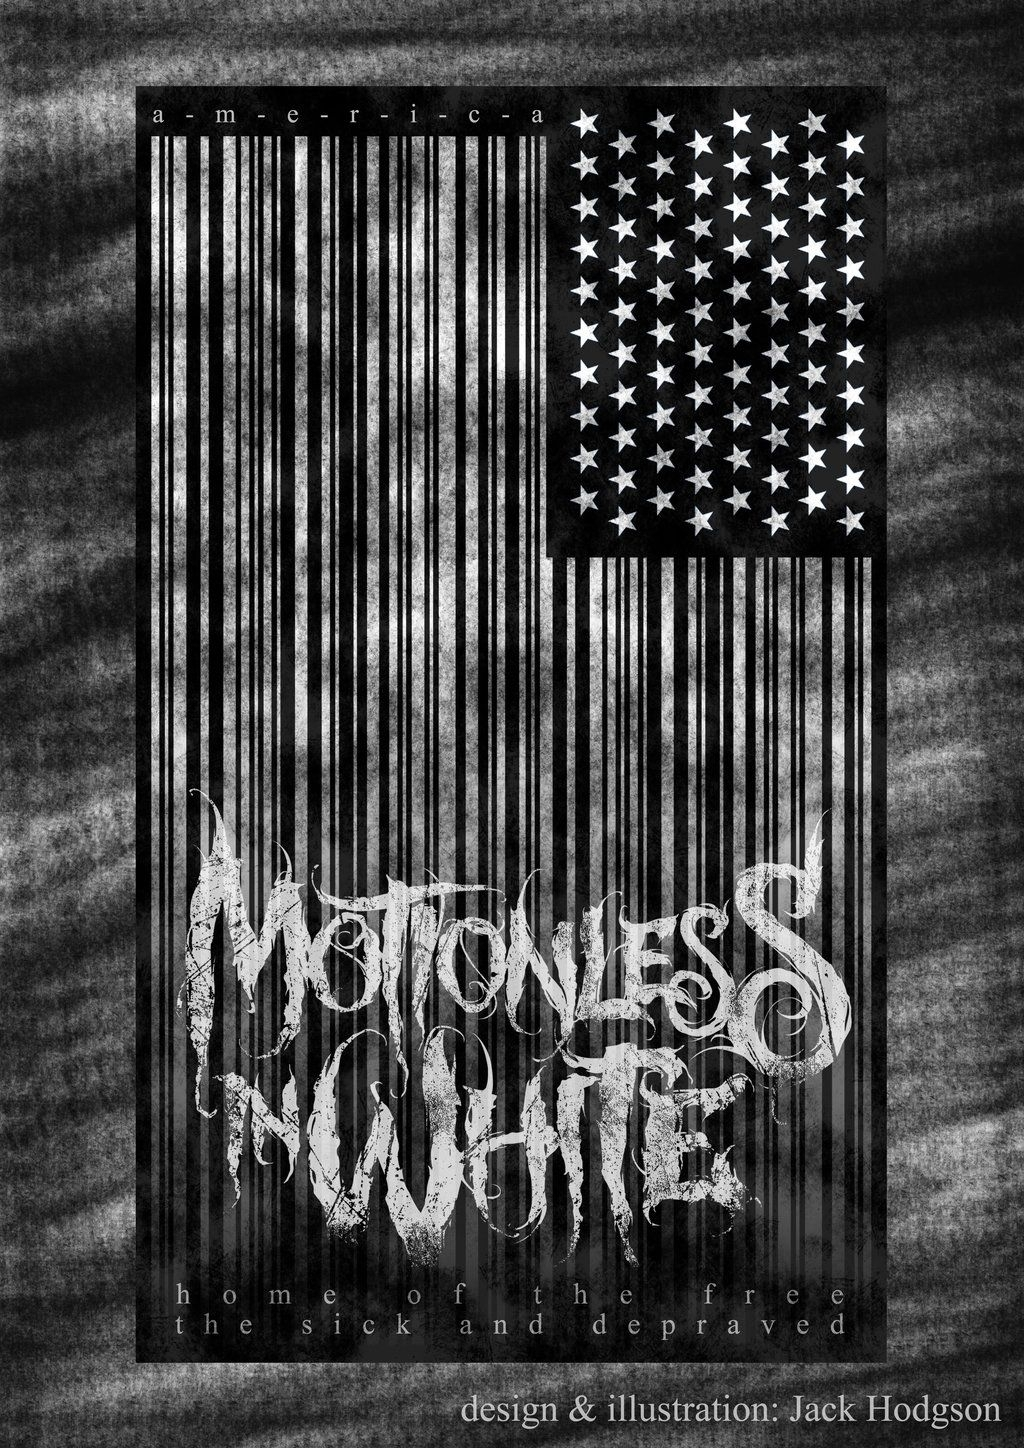 motionless in white wallpaper - wallpapersafari | beautiful